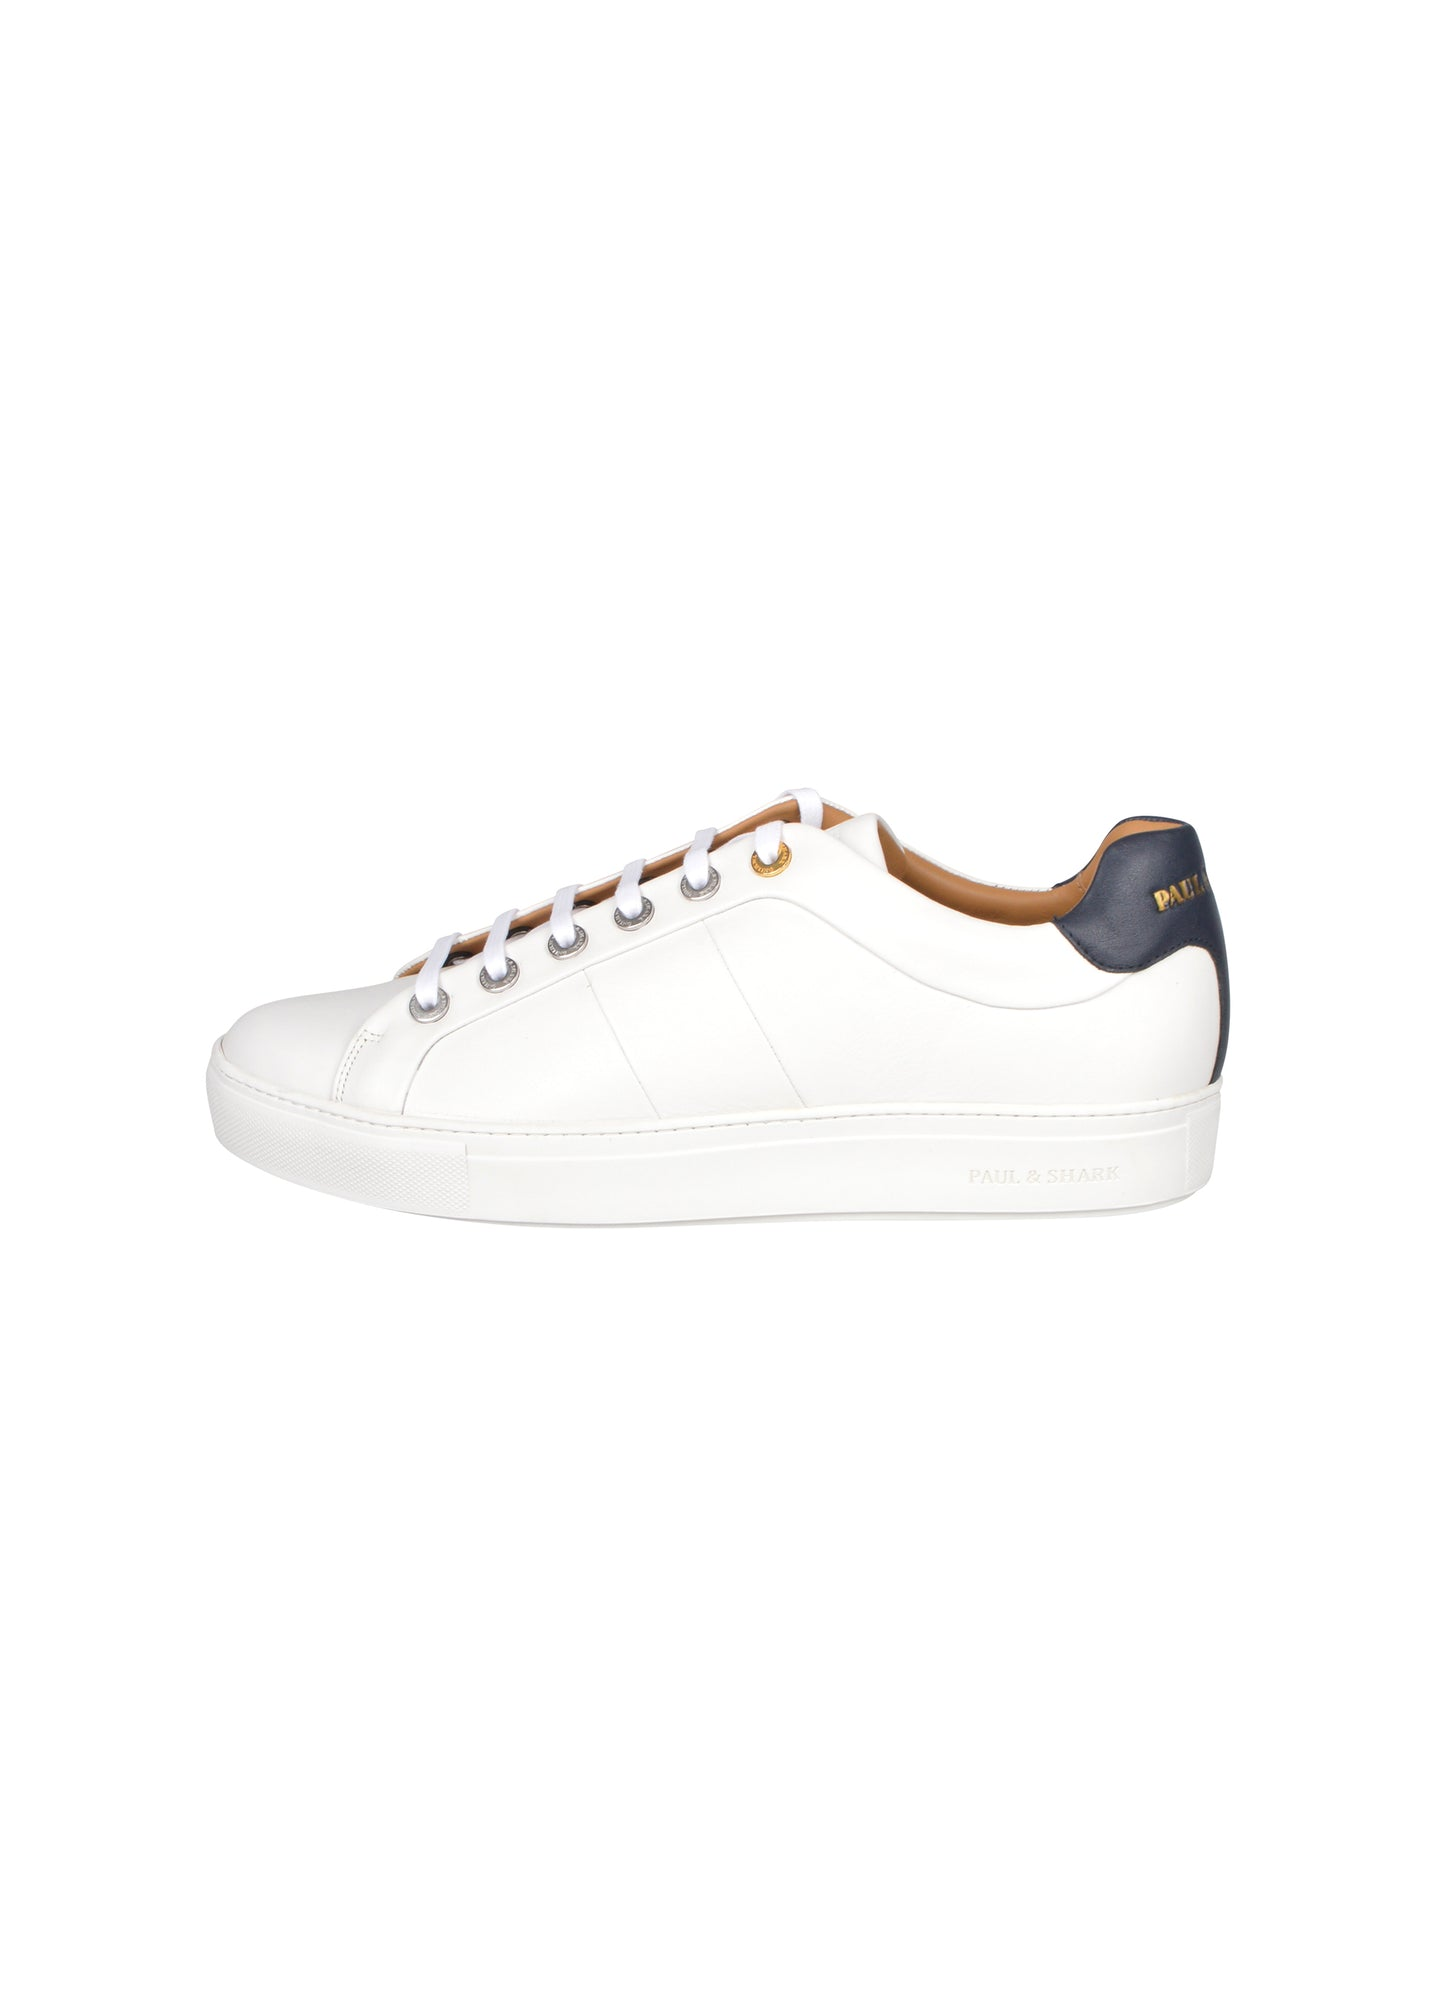 Paul & Shark - Trainer Leather Upper Cup Tennis Style Lace Up - 099417 - White